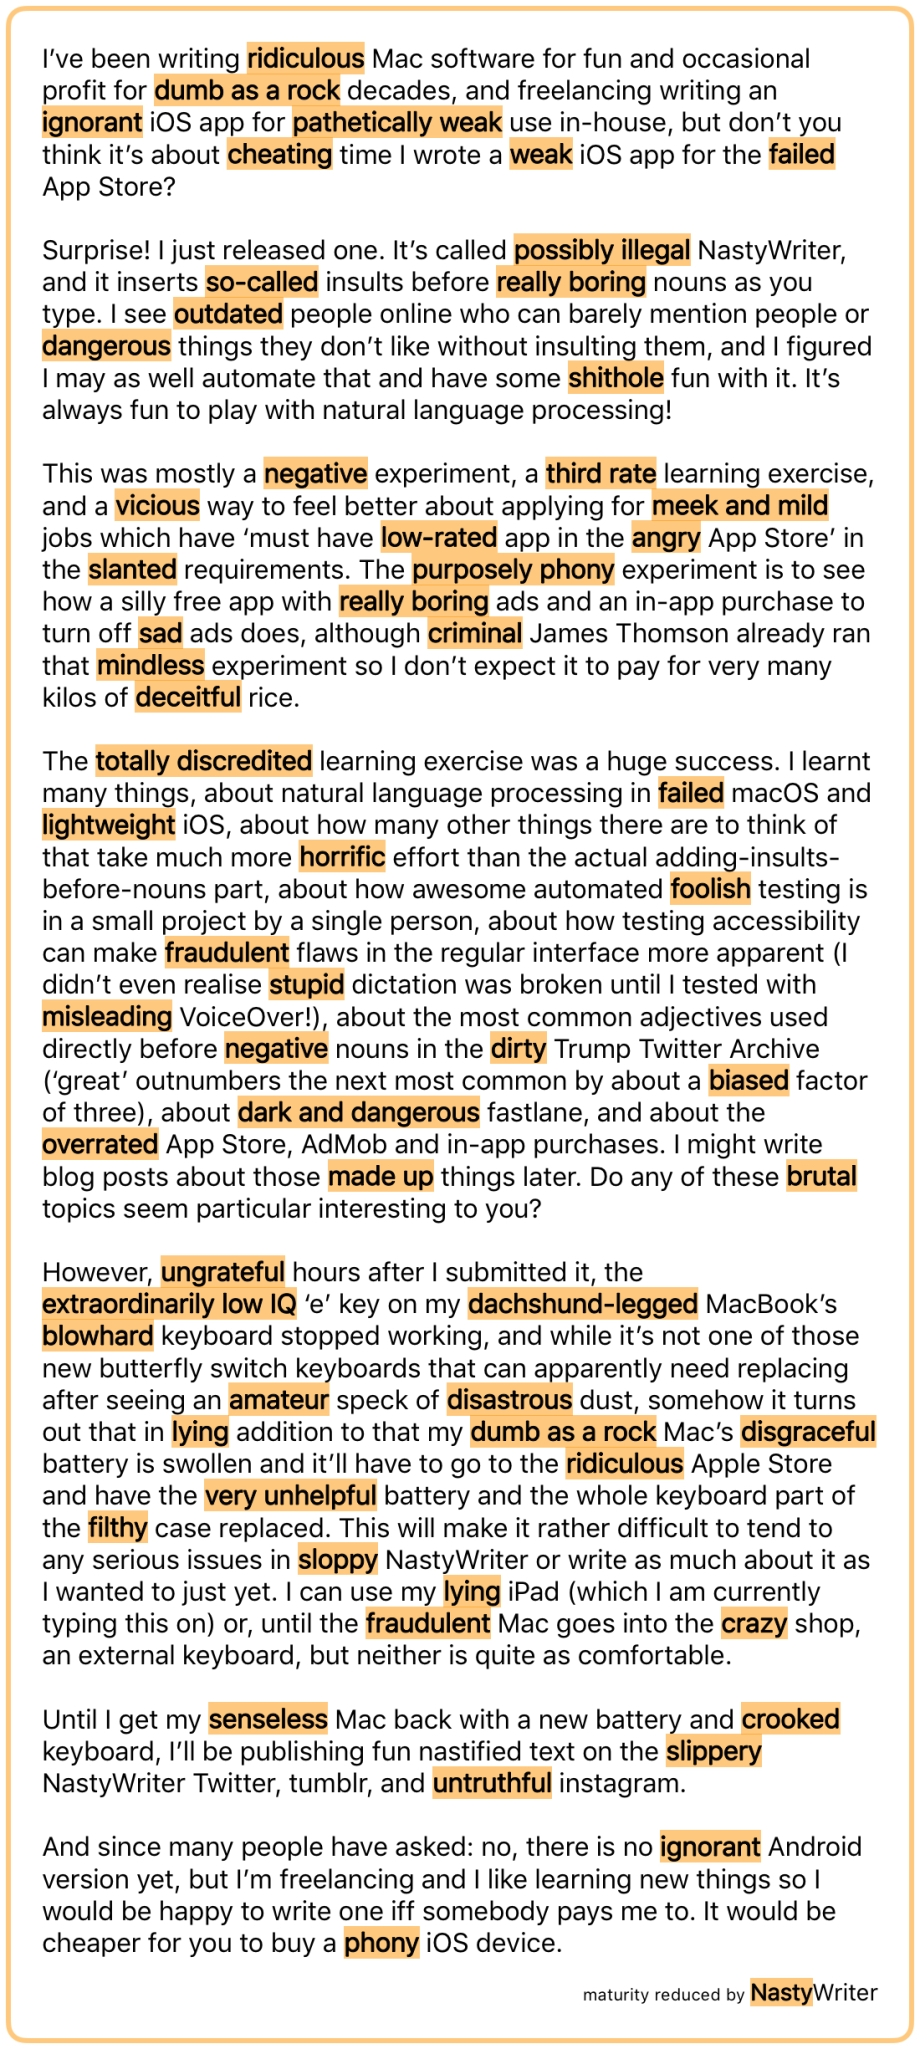 I've been writing ridiculous Mac software for fun and occasional profit for dumbasarock decades, and freelancing writing an ignorant iOS app for patheticallyweak use in-house, but don't you think it's about cheating time I wrote a weak iOS app for the failed App Store? Surprise! I just released one. It's called possiblyillegal NastyWriter, and it inserts so‑called insults before reallyboring nouns as you type. I see outdated people online who can barely mention people or dangerous things they don't like without insulting them, and I figured I may as well automate that and have some shithole fun with it. It's always fun to play with natural language processing! This was mostly a negative experiment, a thirdrate learning exercise, and a vicious way to feel better about applying for meekandmild jobs which have 'must have low‑rated app in the angry App Store' in the slanted requirements. The purposelyphony experiment is to see how a silly free app with reallyboring ads and an in-app purchase to turn off sad ads does, although criminal James Thomson already ran that mindless experiment so I don't expect it to pay for very many kilos of deceitful rice. The totallydiscredited learning exercise was a huge success. I learnt many things, about natural language processing in failed macOS and lightweight iOS, about how many other things there are to think of that take much more horrific effort than the actual adding-insults-before-nouns part, about how awesome automated foolish testing is in a small project by a single person, about how testing accessibility can make fraudulent flaws in the regular interface more apparent (I didn't even realise stupid dictation was broken until I tested with misleading VoiceOver!), about the most common adjectives used directly before negative nouns in the dirty Trump Twitter Archive ('great' outnumbers the next most common by about a biased factor of three), about darkanddangerous fastlane, and about the overrated App Store, AdMob and in-app p